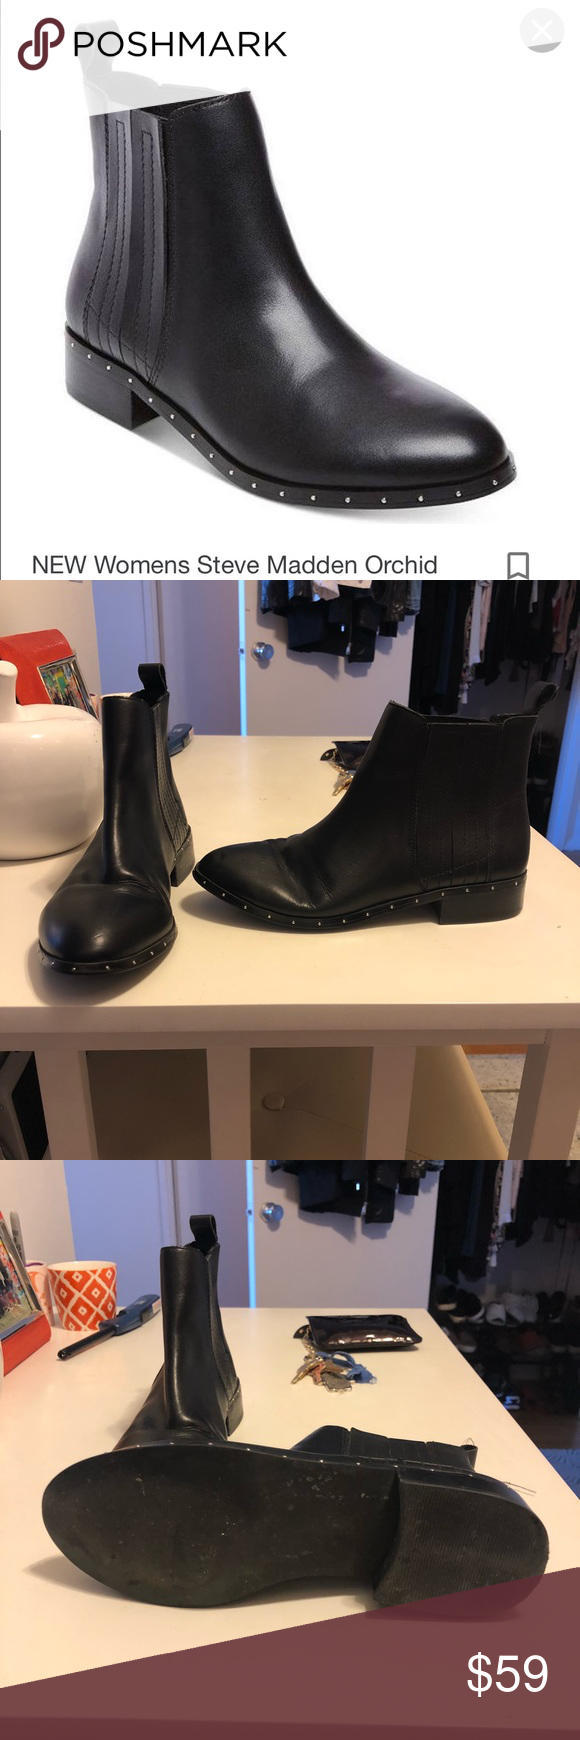 c5f96ff58be Steve Madden Orchid Bootie with Studs Barely worn Steve Madden ...